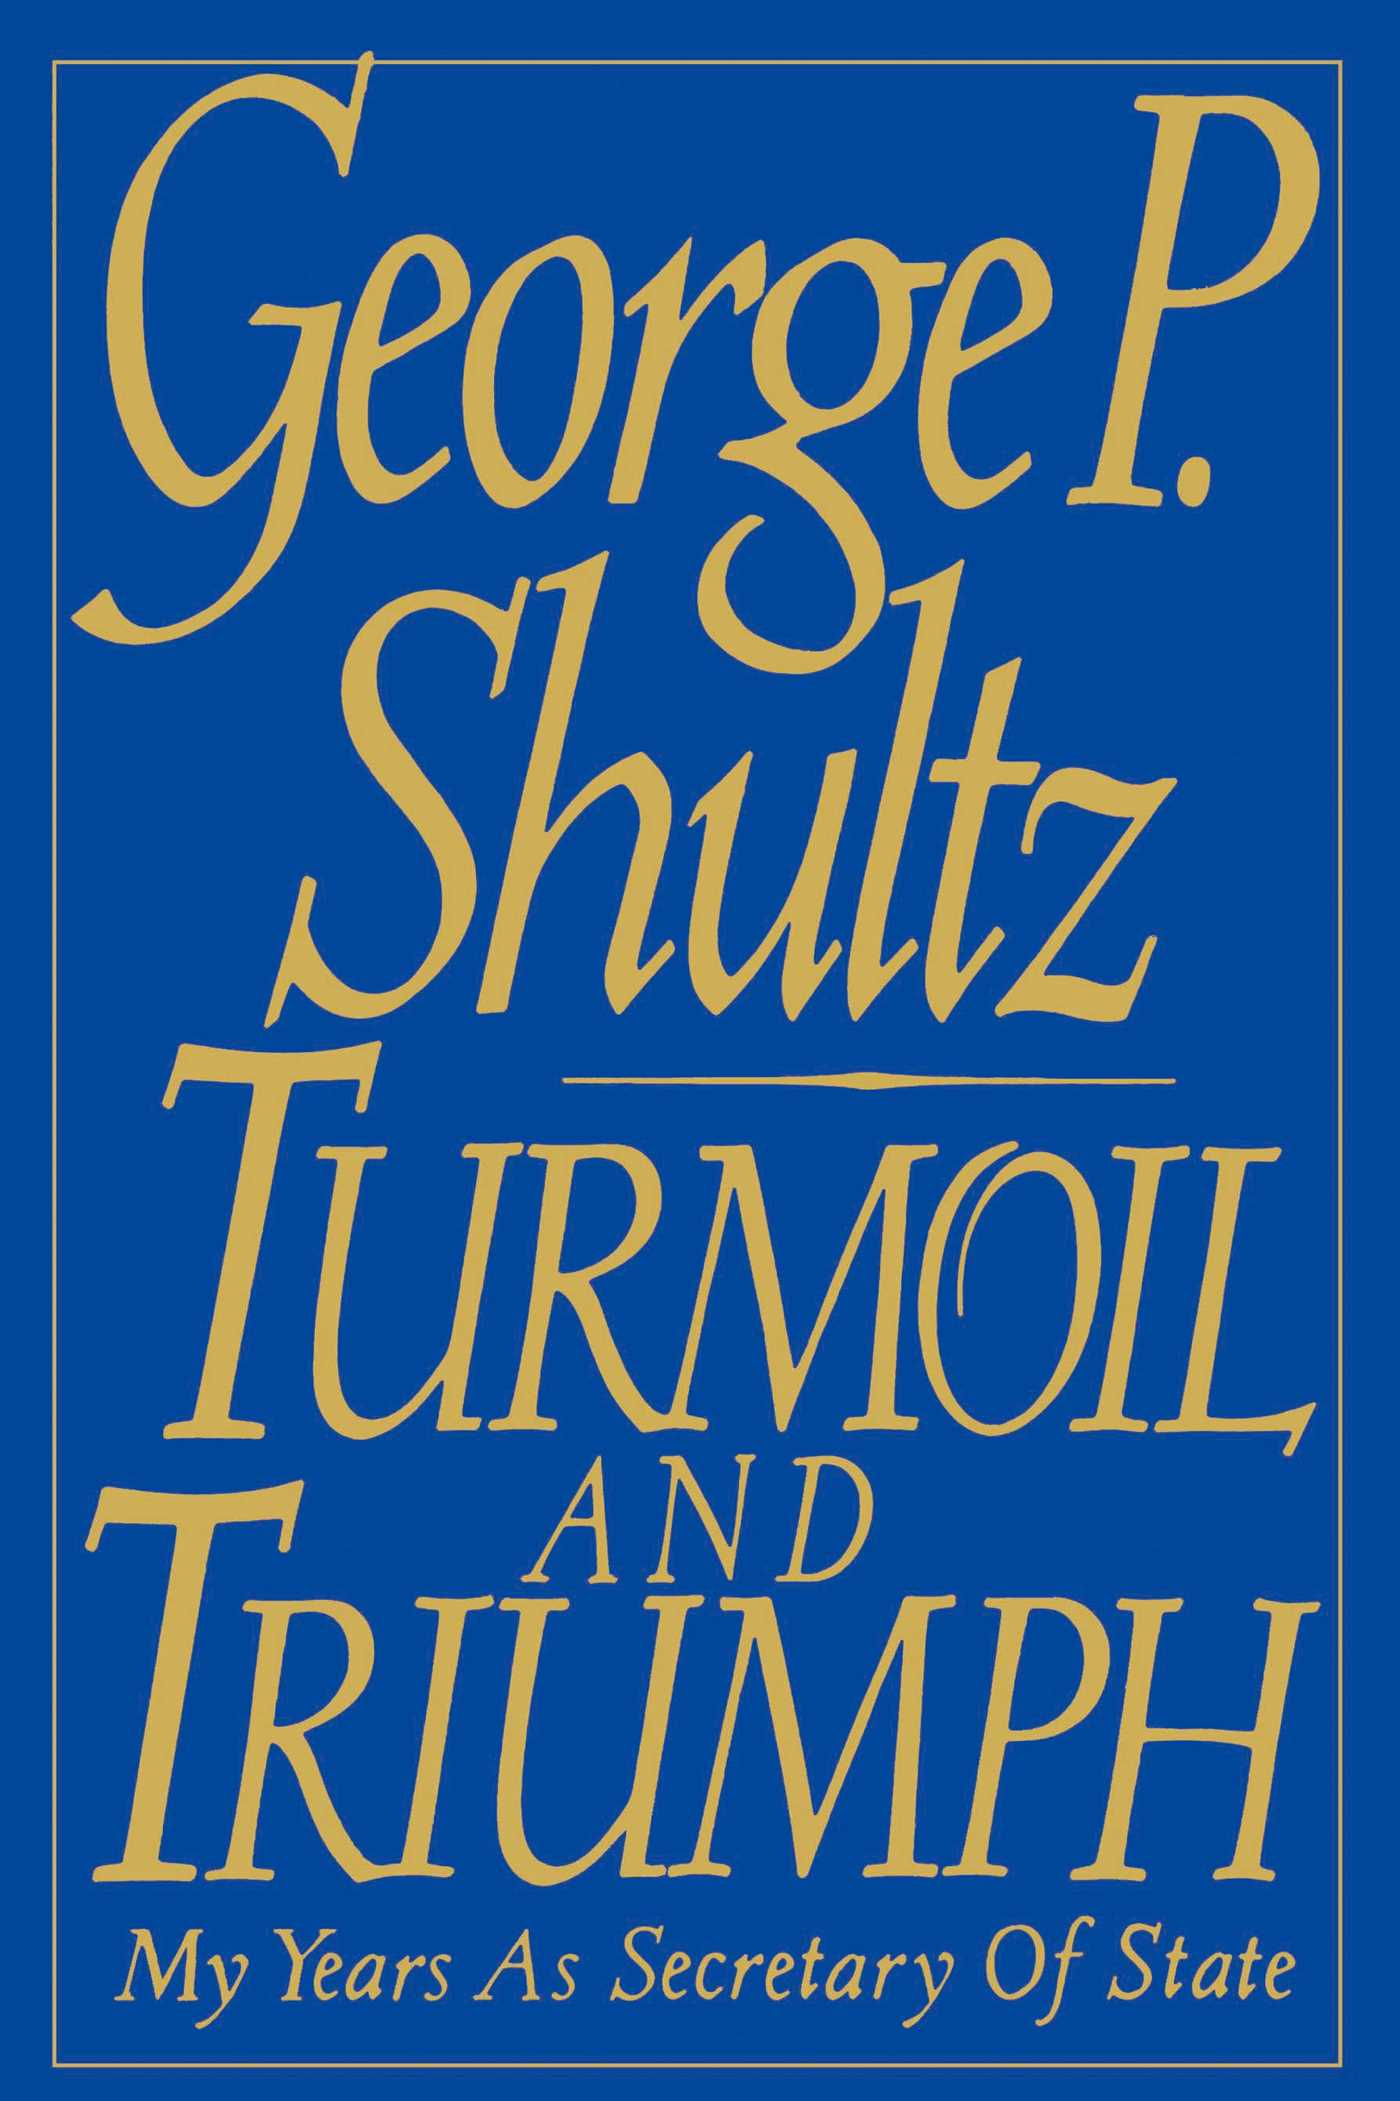 Turmoil-and-triumph-9781451623116_hr